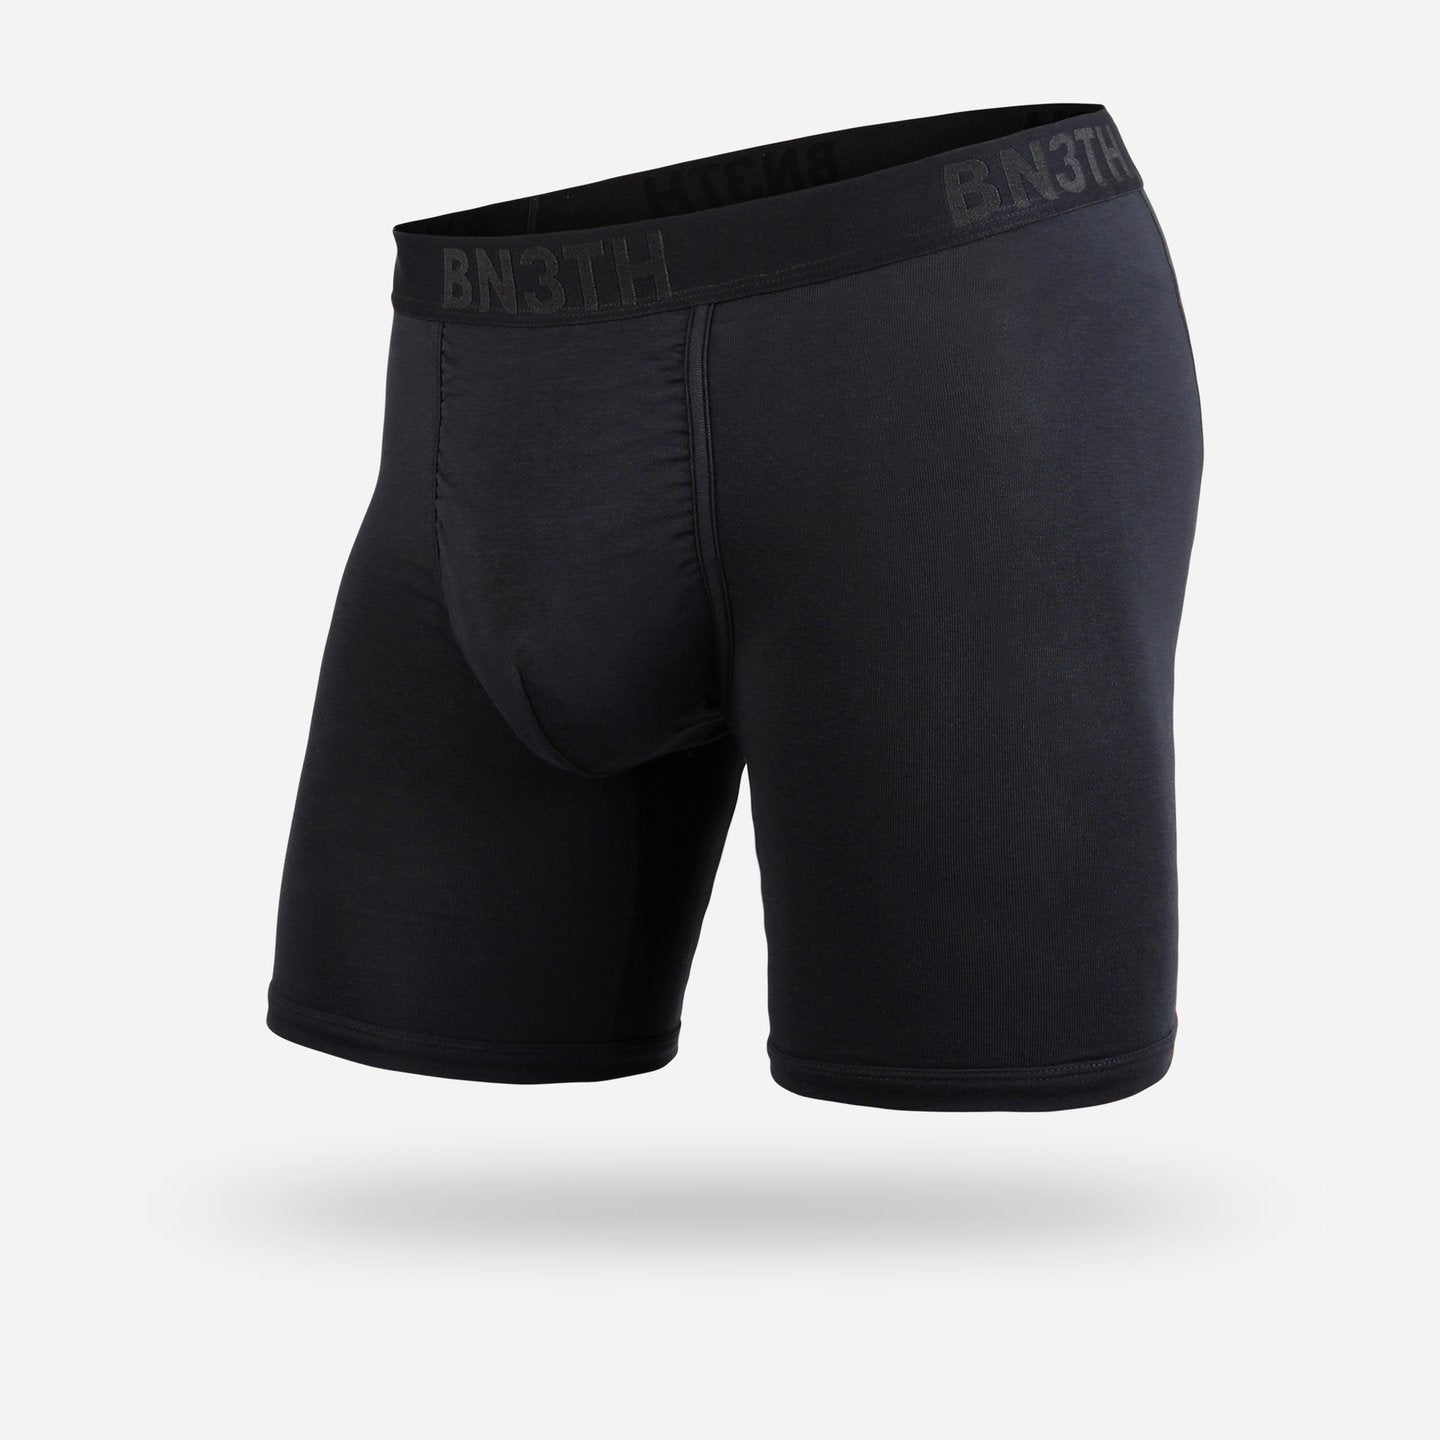 BN3TH Classic Boxer Briefs Black